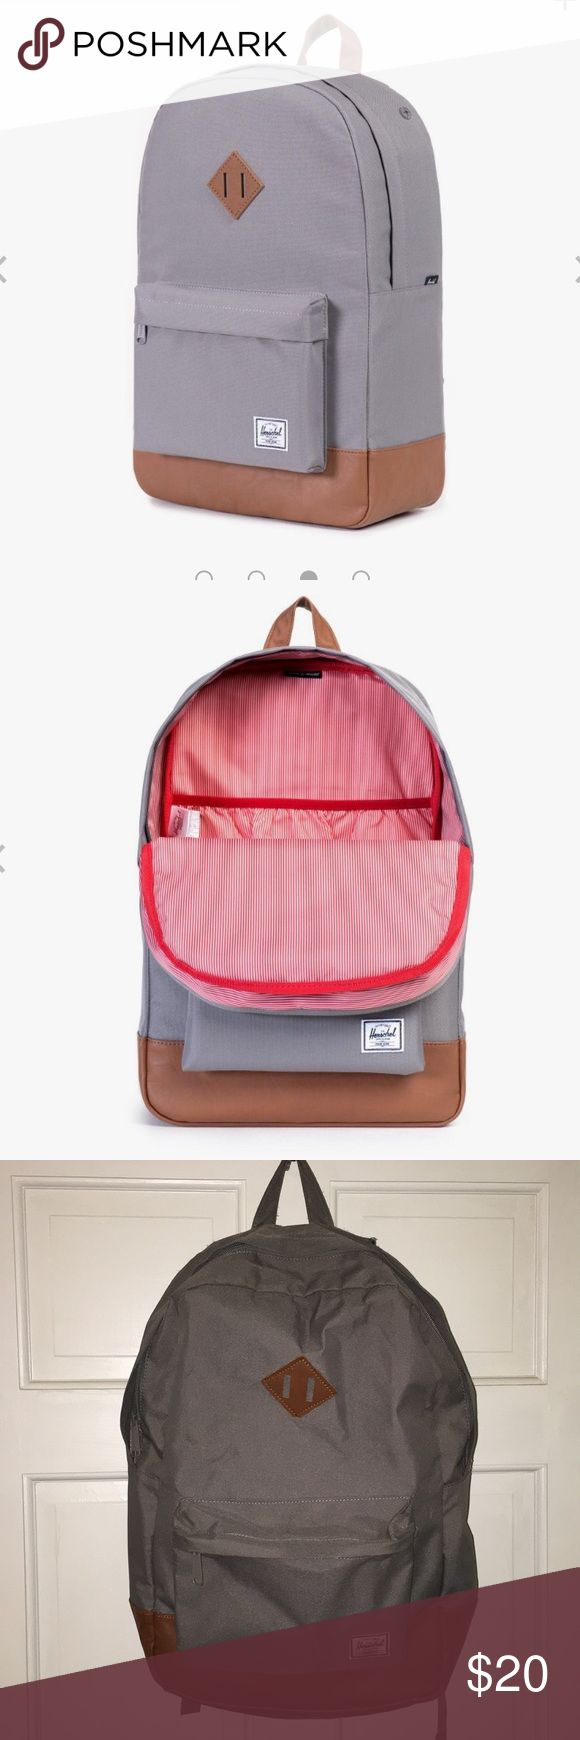 """Herschel Heritage Backpack Signature striped fabric liner 15"""" laptop sleeve Pebbled leather zipper pulls Single front pocket with key clip Internal media pocket with headphone port Classic woven label UNISEX Herschel Supply Company Bags Backpacks"""